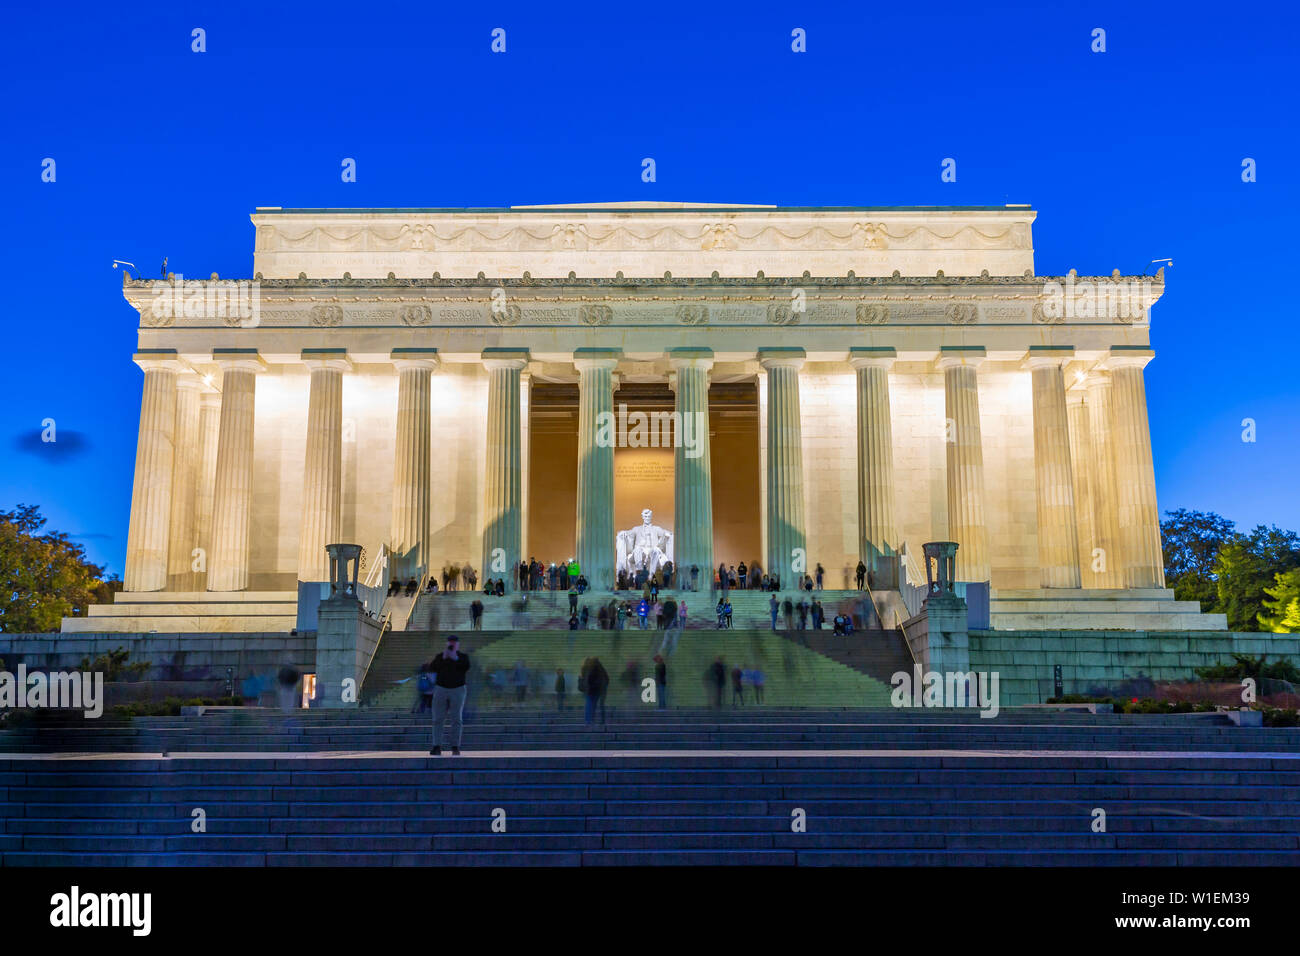 View of Lincoln Memorial at dusk, Washington D.C., United States of America, North America Stock Photo